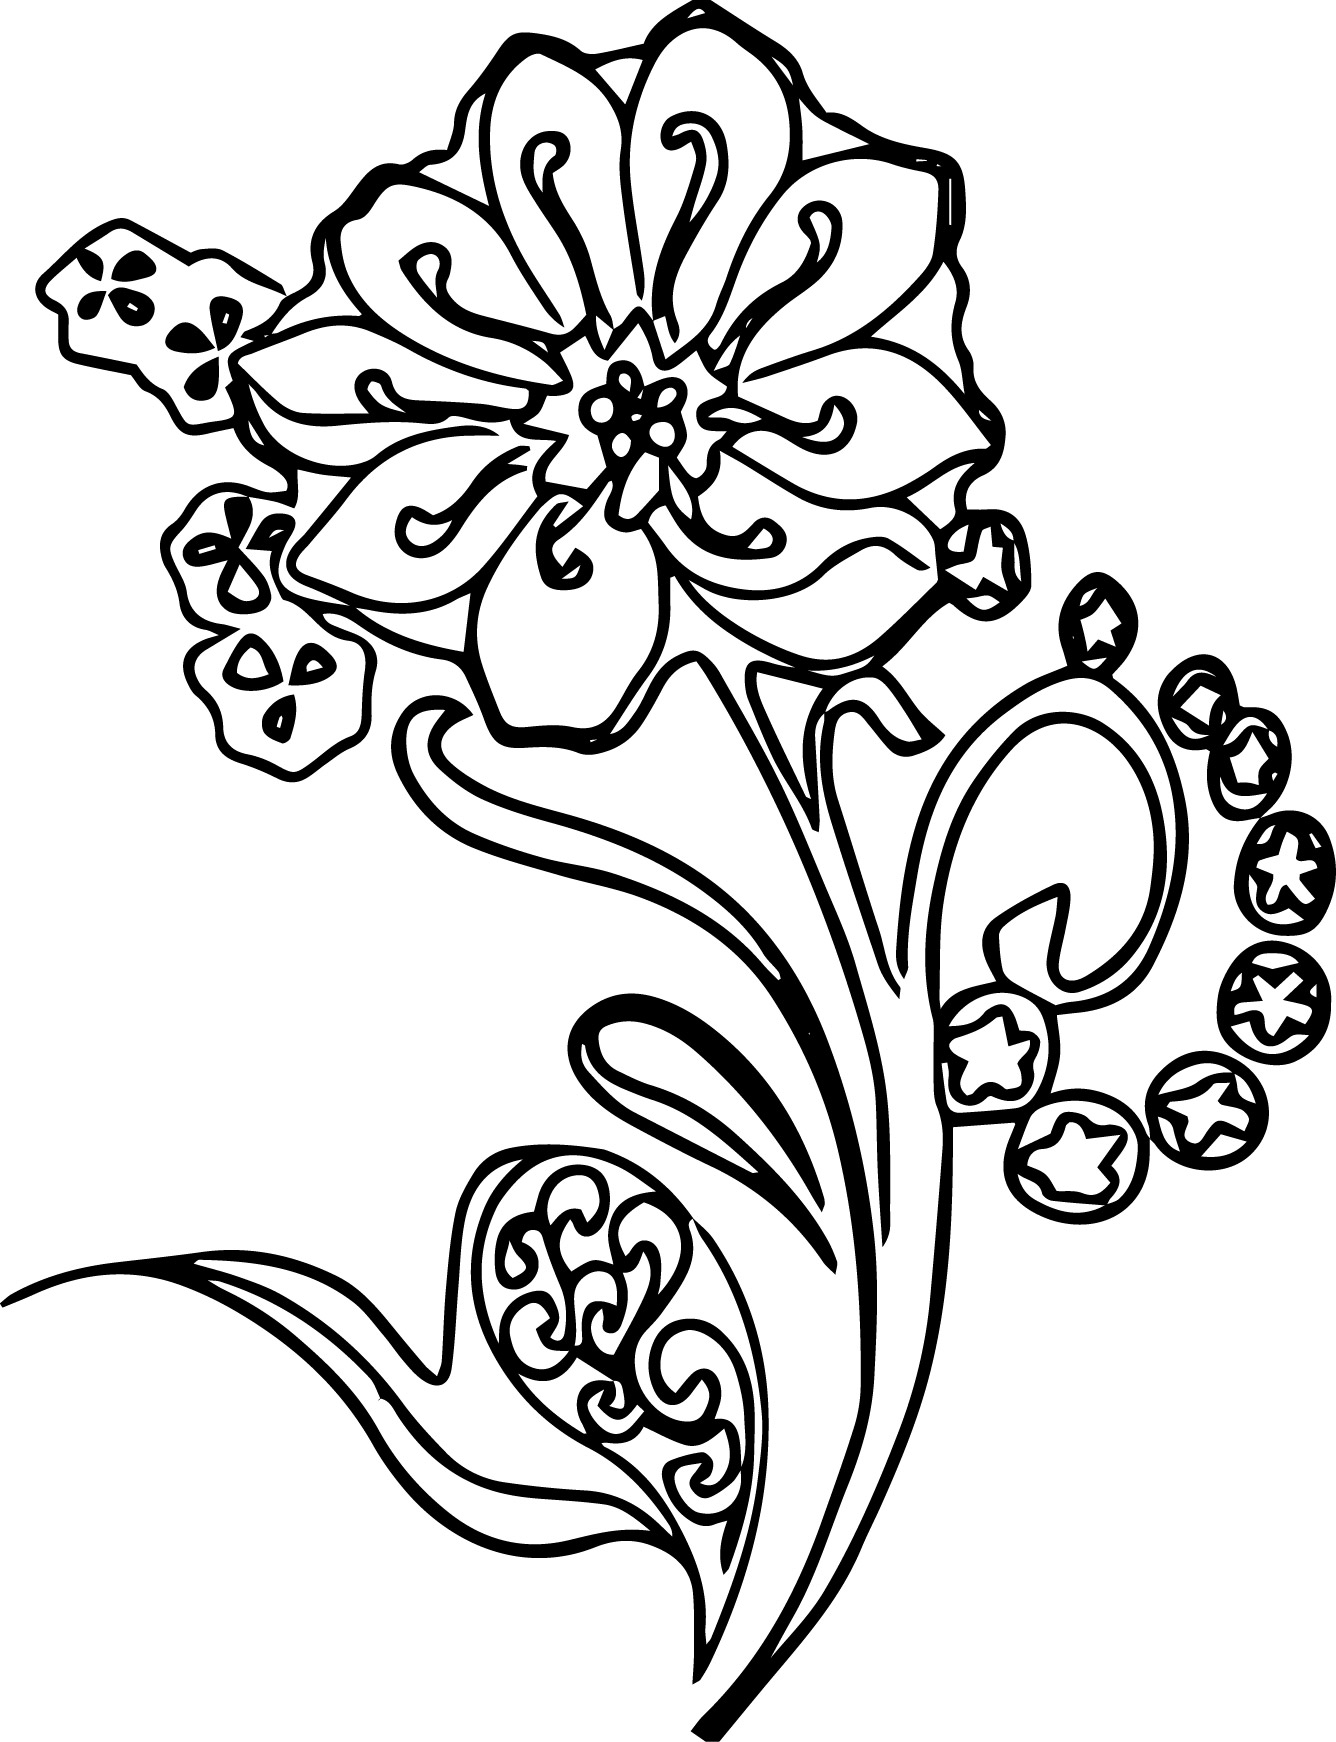 abstract flower coloring pages coloring pages coloring pages very difficult coloring coloring pages flower abstract